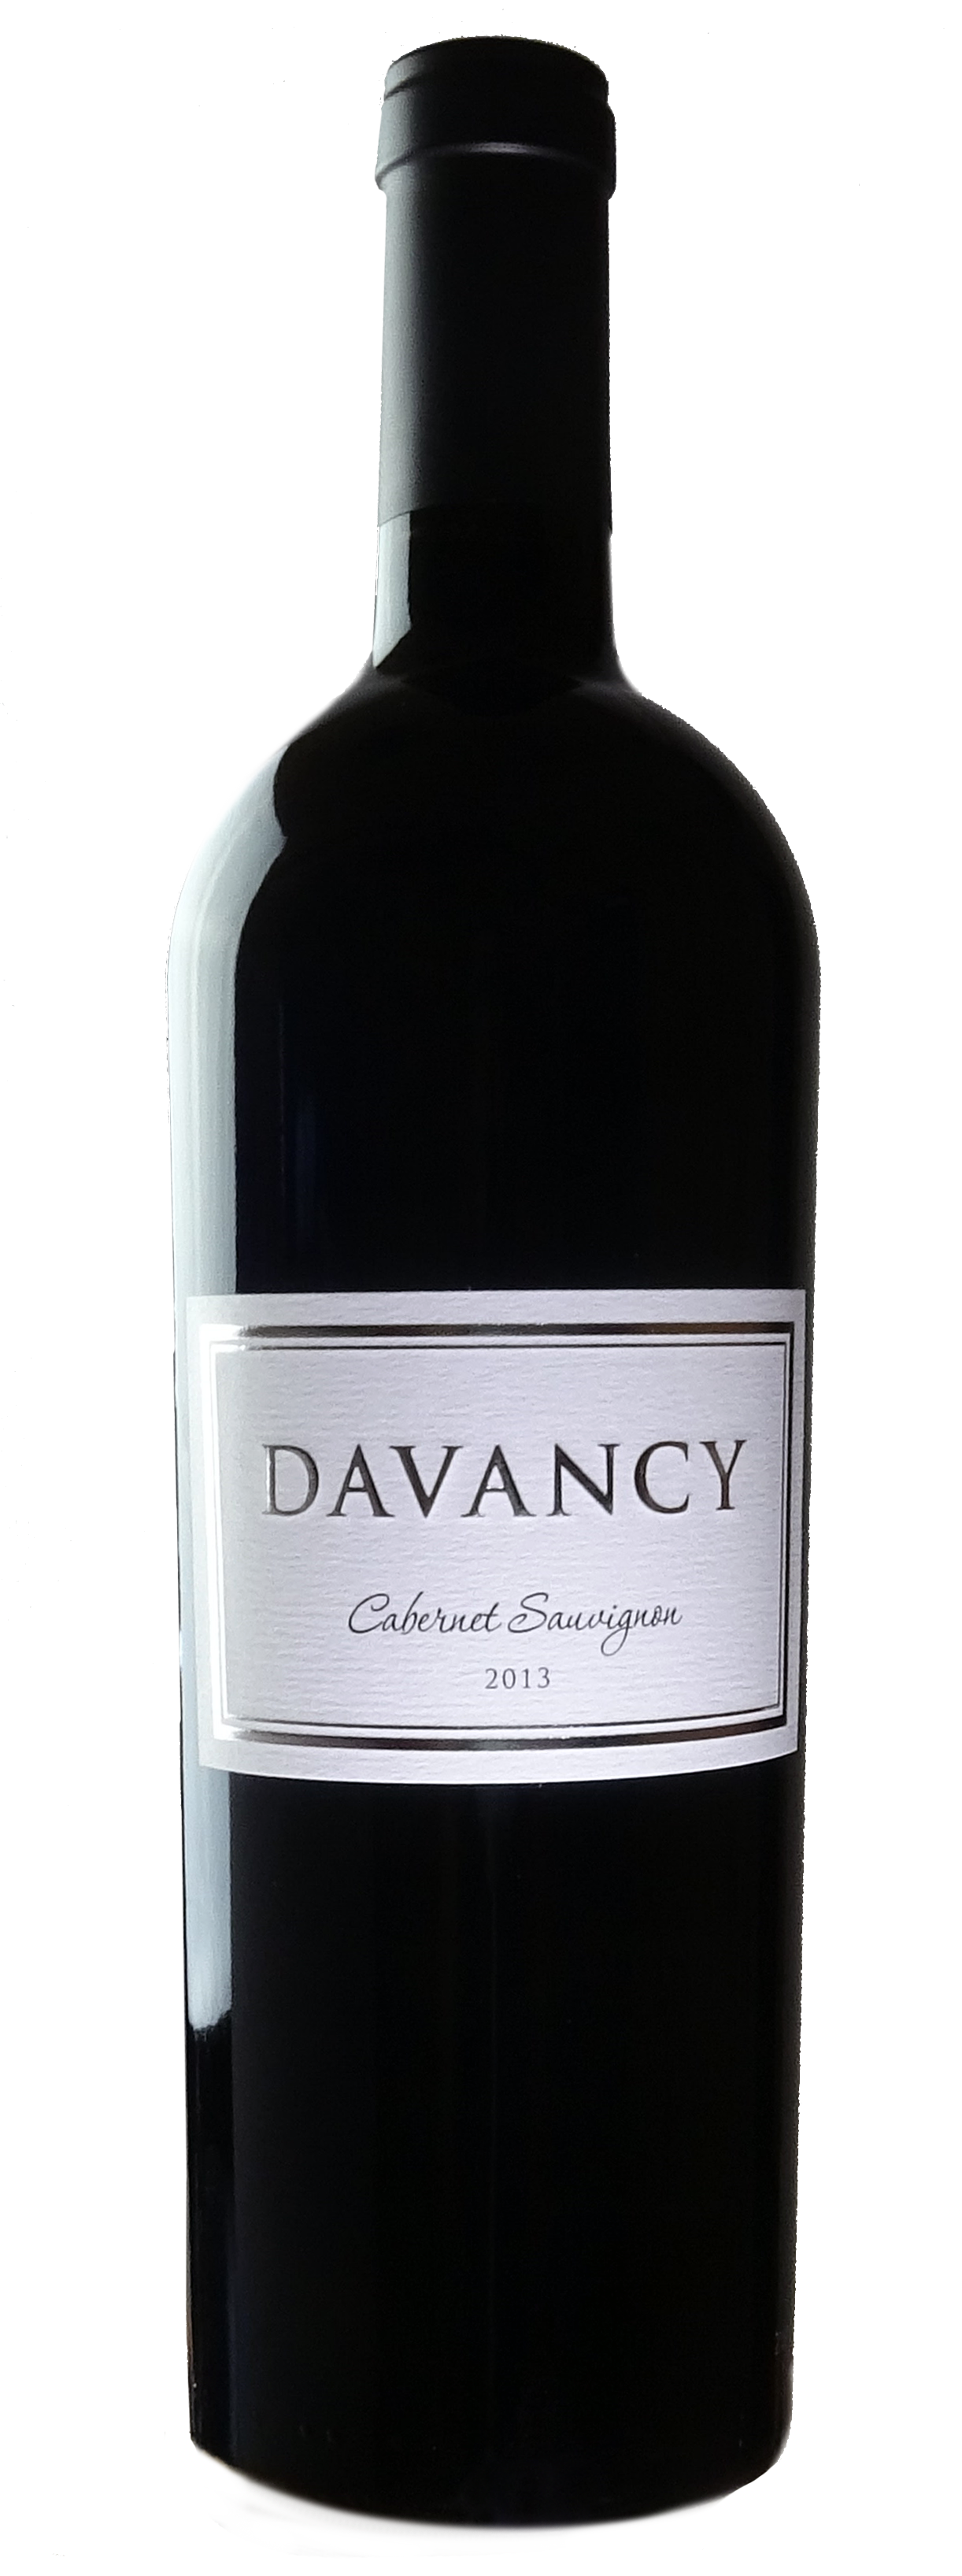 Product Image for Cabernet Sauvignon '13